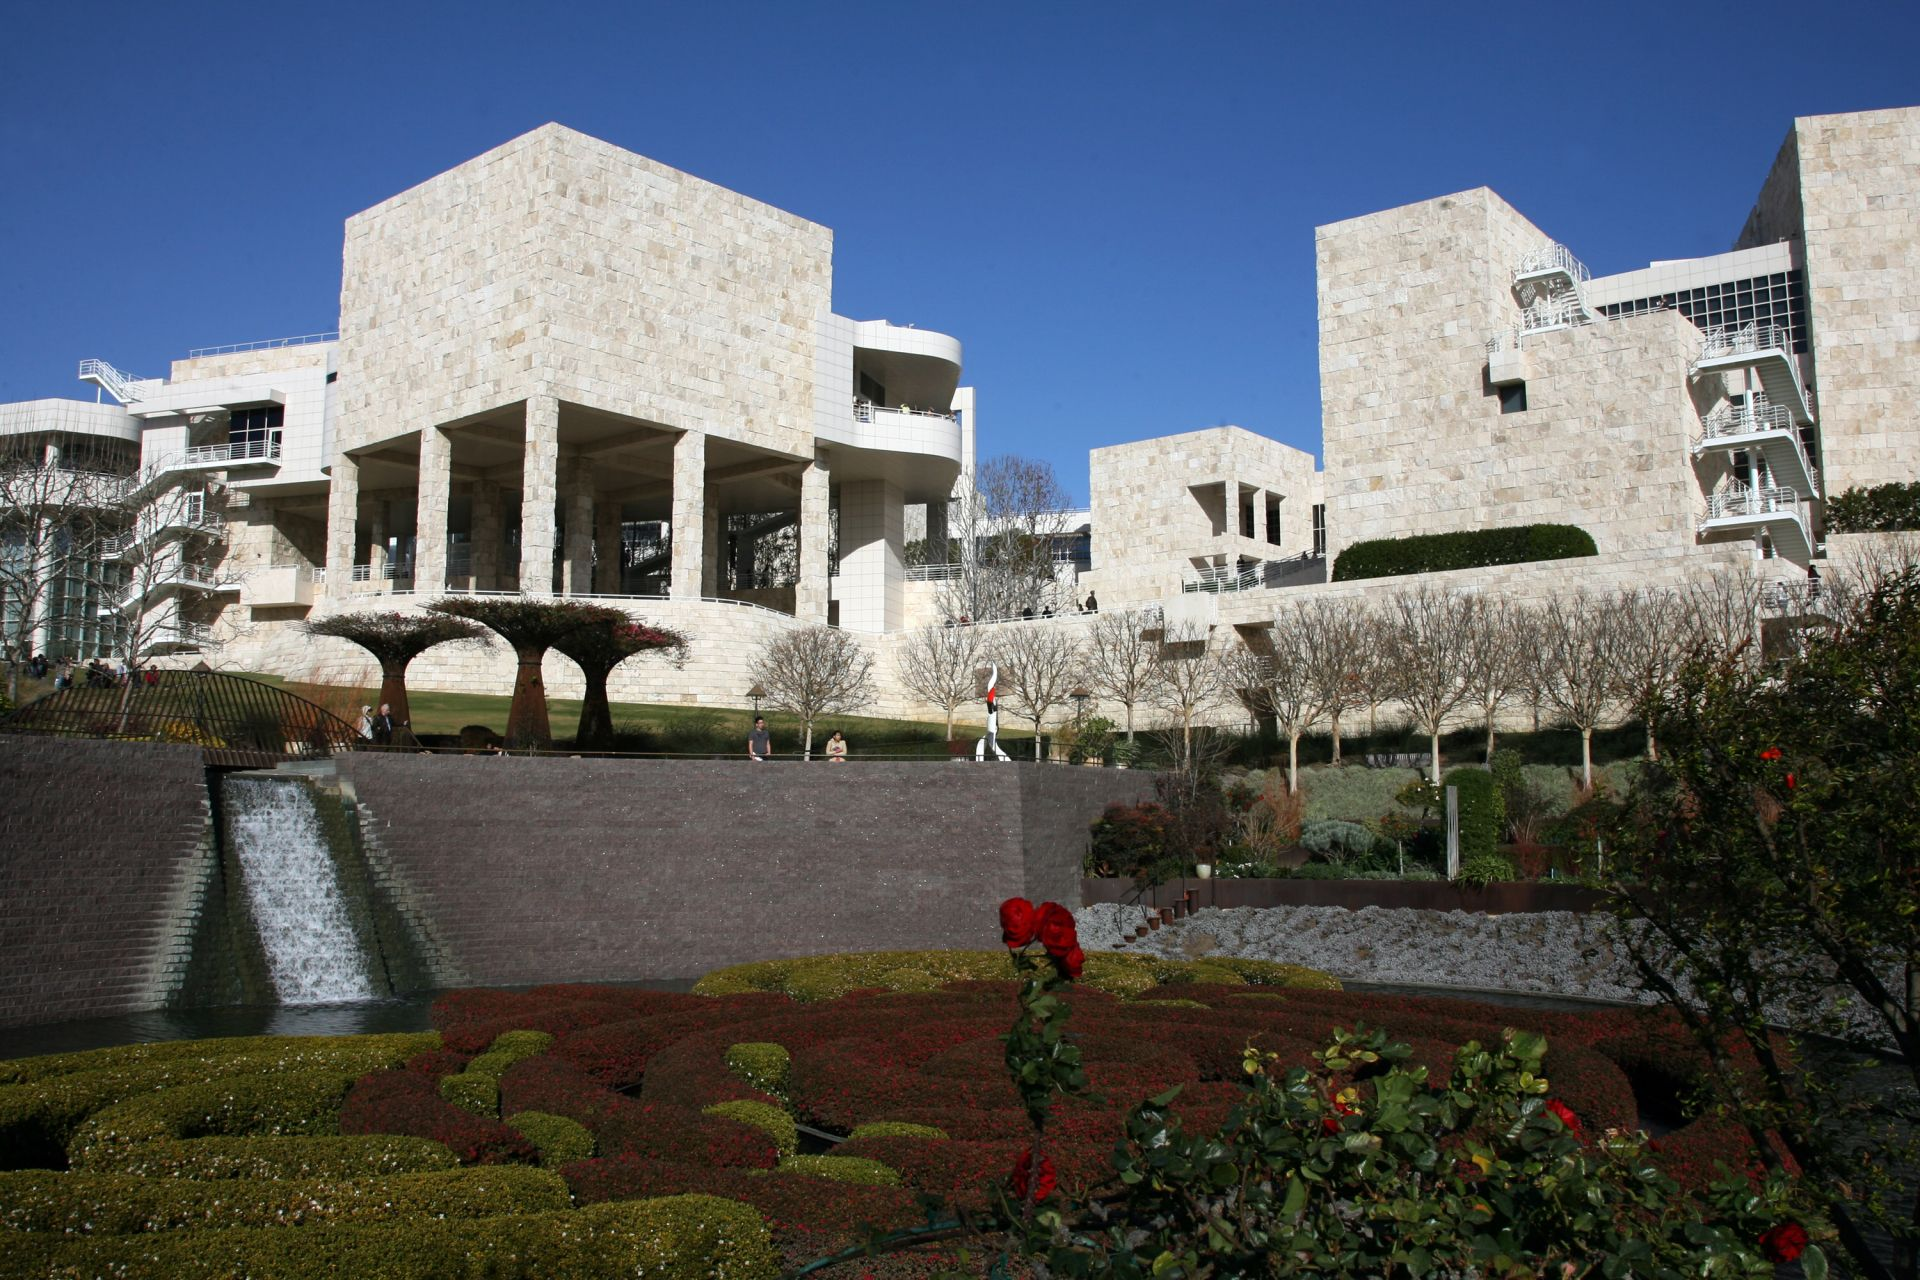 View of the Getty Center in Los Angeles, 05 January 2007. AFP PHOTO/GABRIEL BOUYS